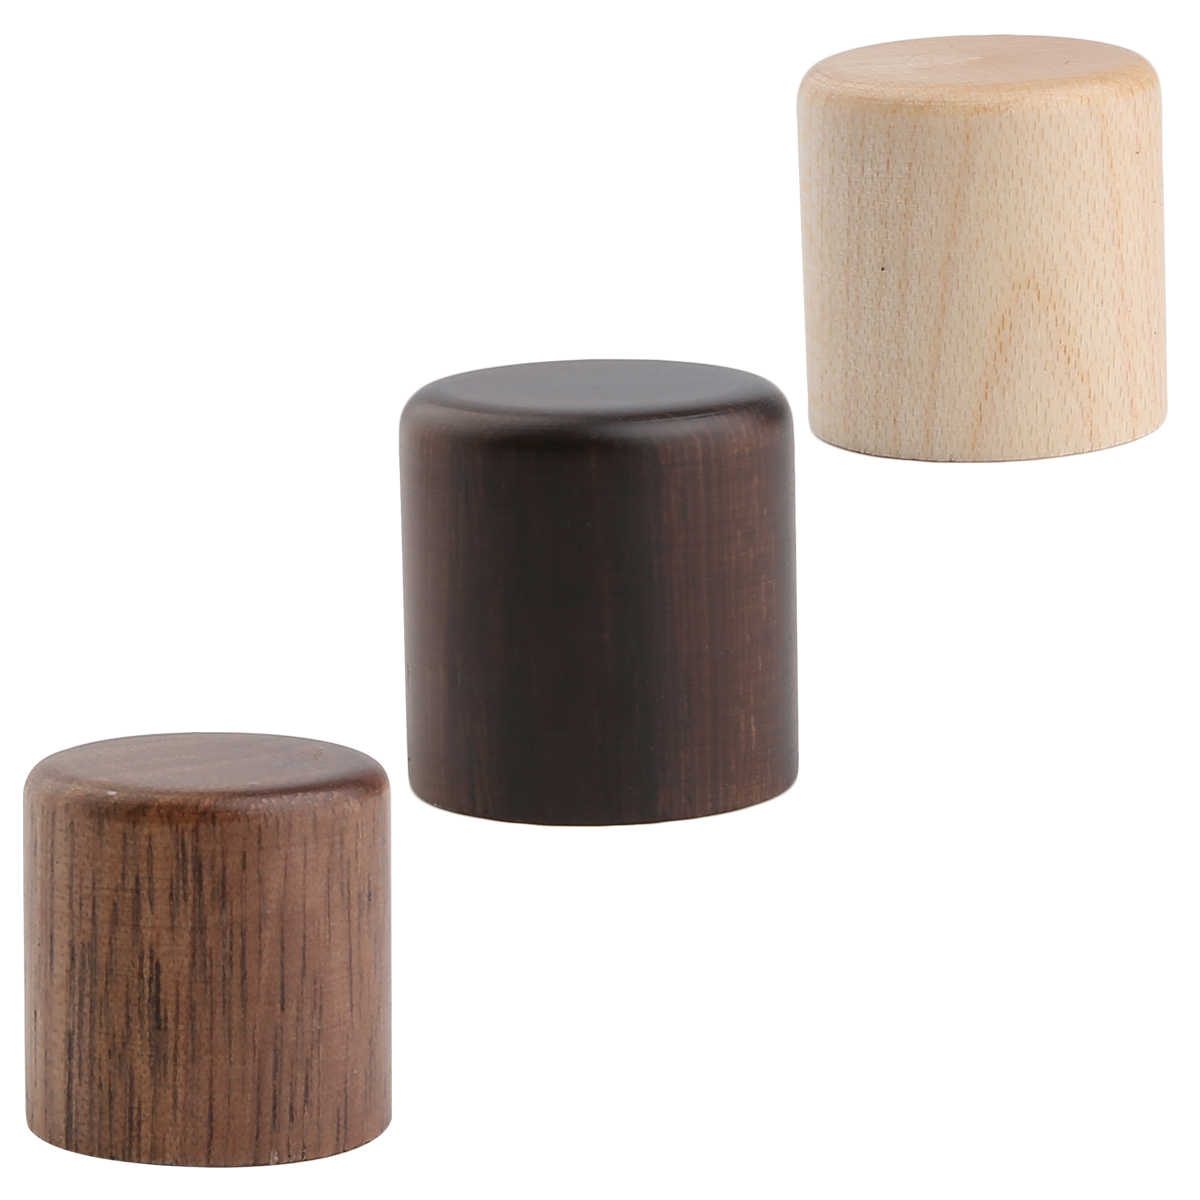 Dopro 2pcs/4pcs Wood Knobs Tele Style Dome Knobs Wood Control Knobs Guitar Bass Wood Barrel Knobs Maple/Rose/Walnut Wood